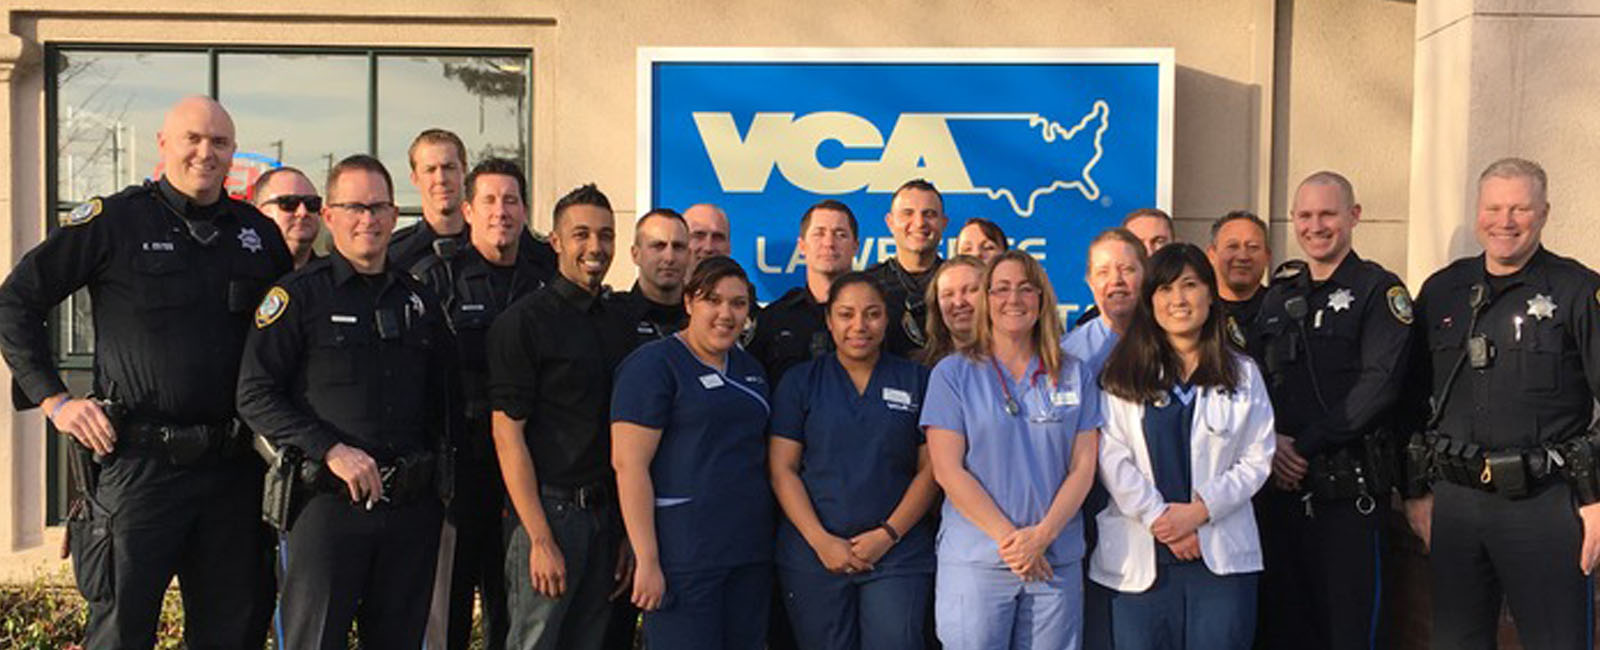 Homepage Team Picture of VCA Lawrence Animal Hospital